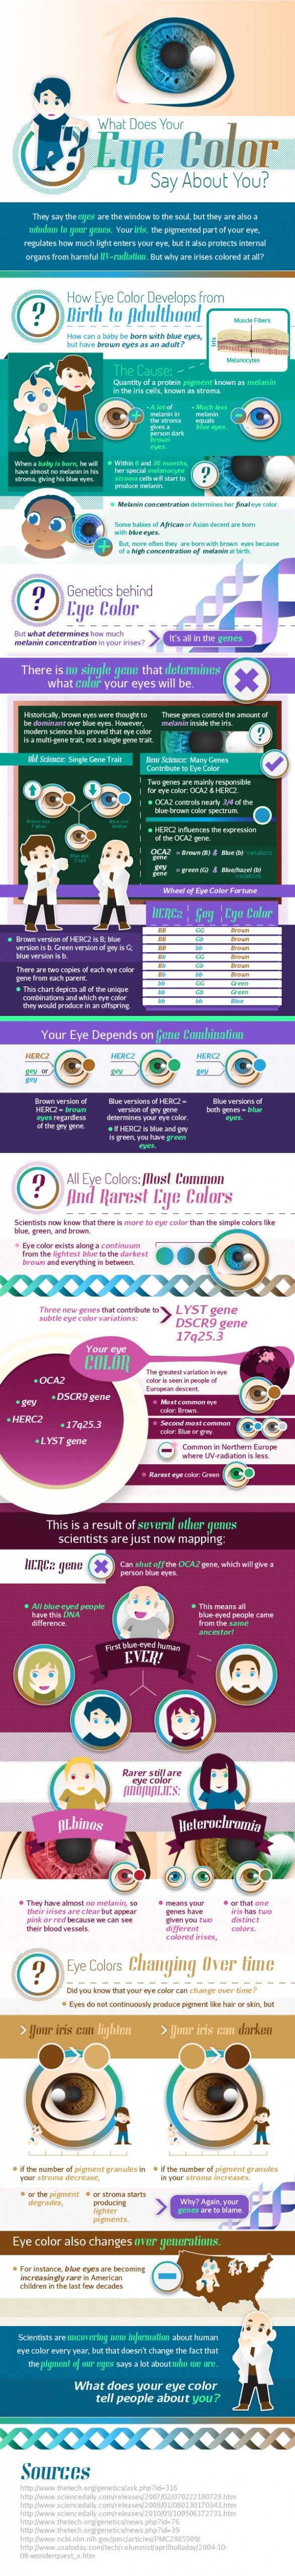 Colour therapy for eyesight - What Does Your Eye Color Say About You